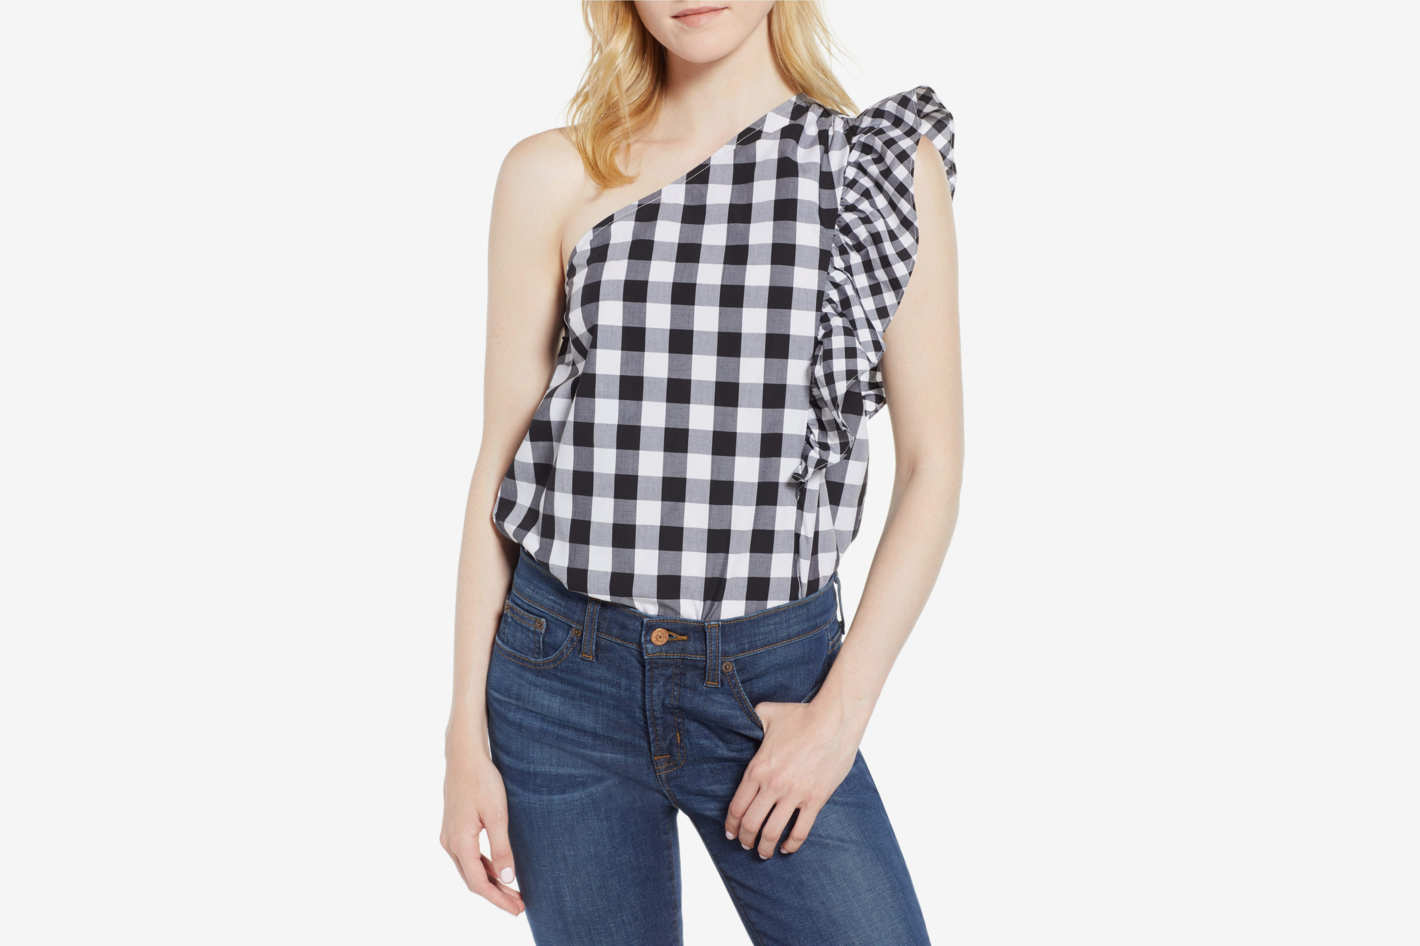 J.Crew Maybe One-Shoulder Mix Gingham Top